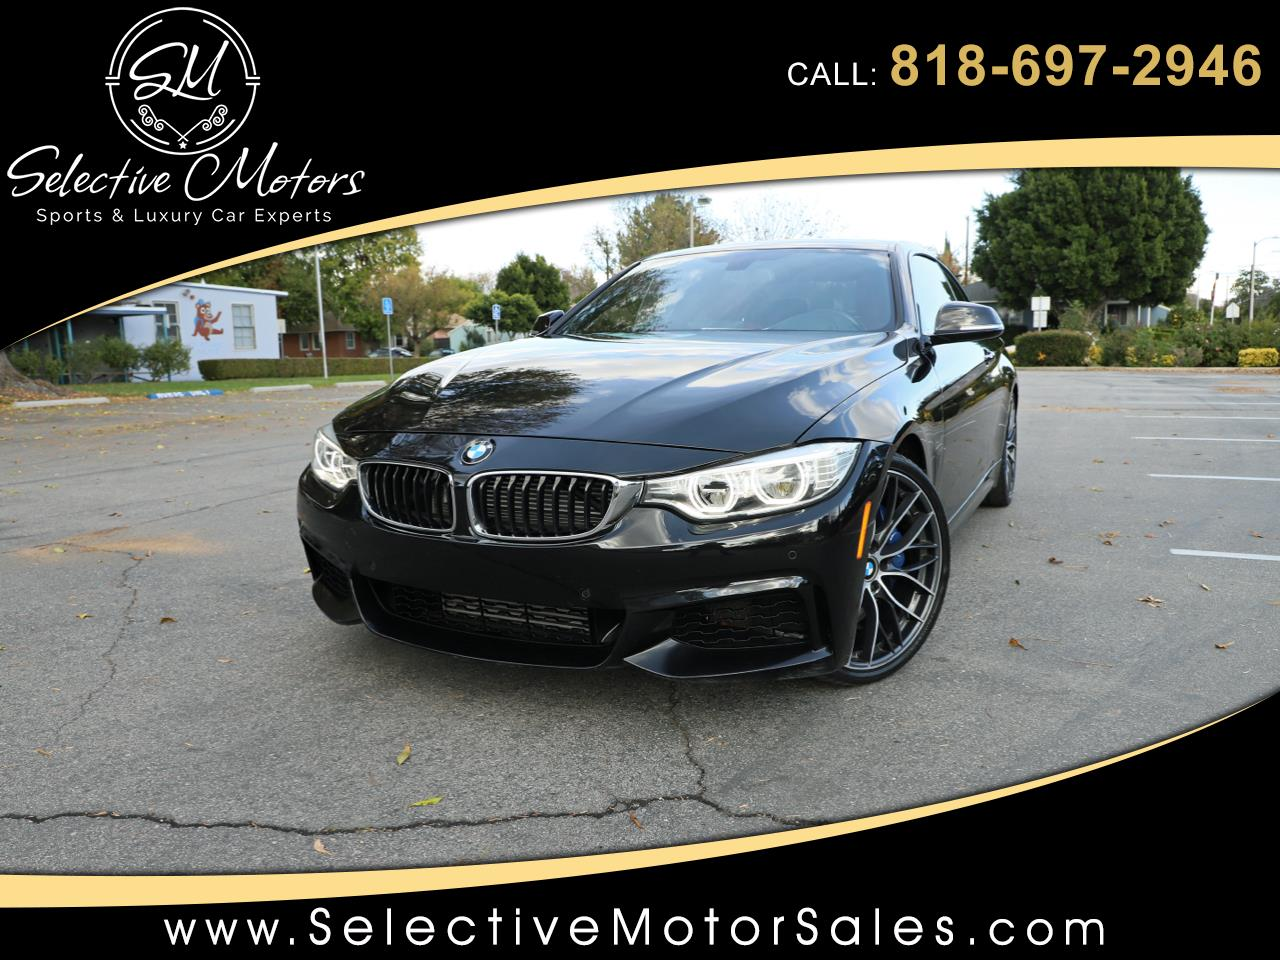 2014 BMW 4-Series 435i Coupe M-Sport